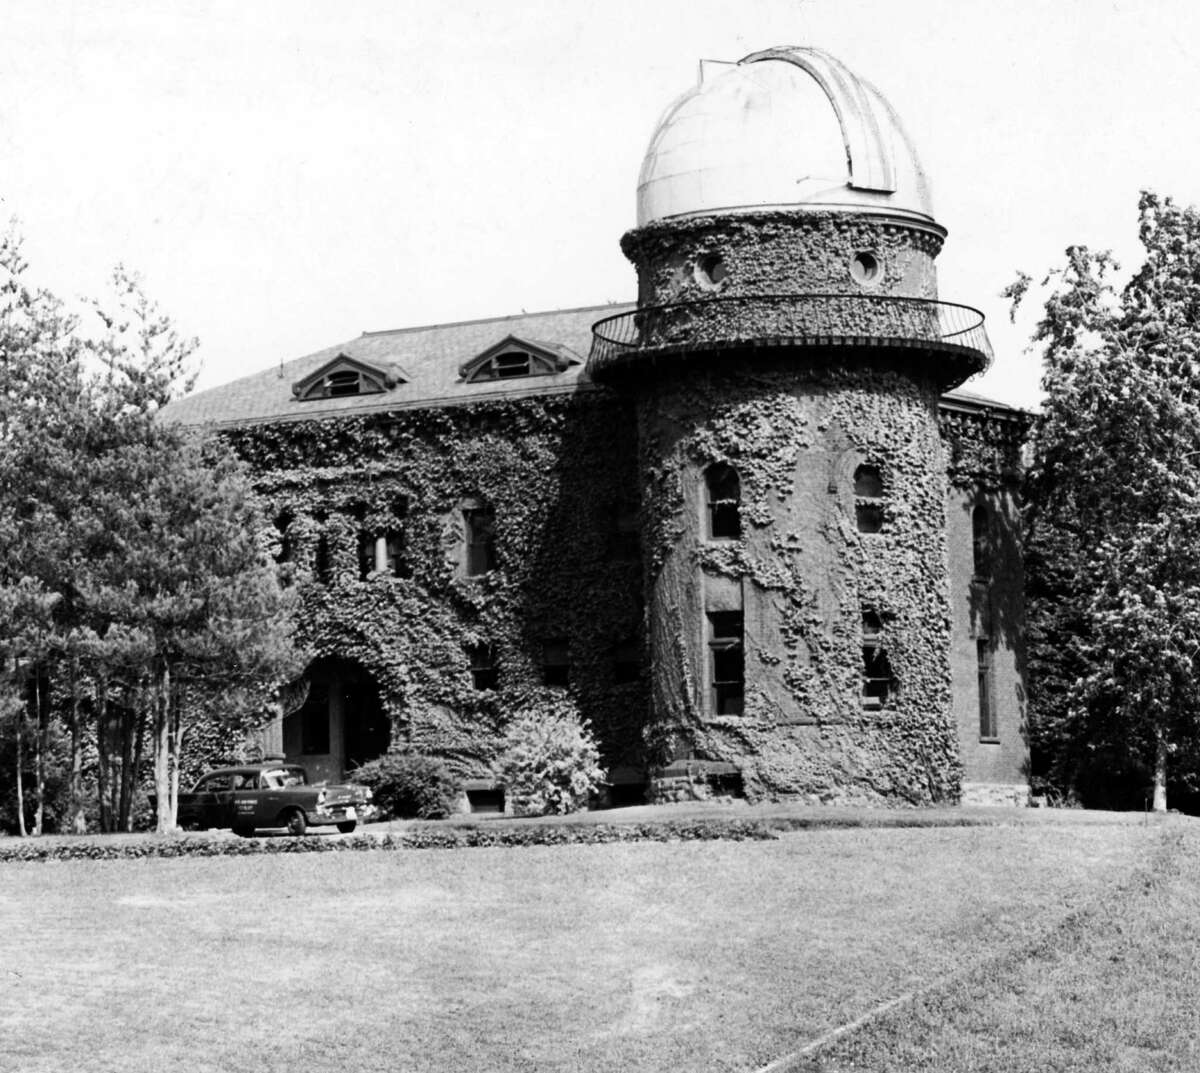 Dudley Observatory Aug. 9, 1958, located at 140 South Lake Ave., Albany, N.Y. The second observatory was dedicated in 1893 and remained in operation until 1965. (Times Union Archive)